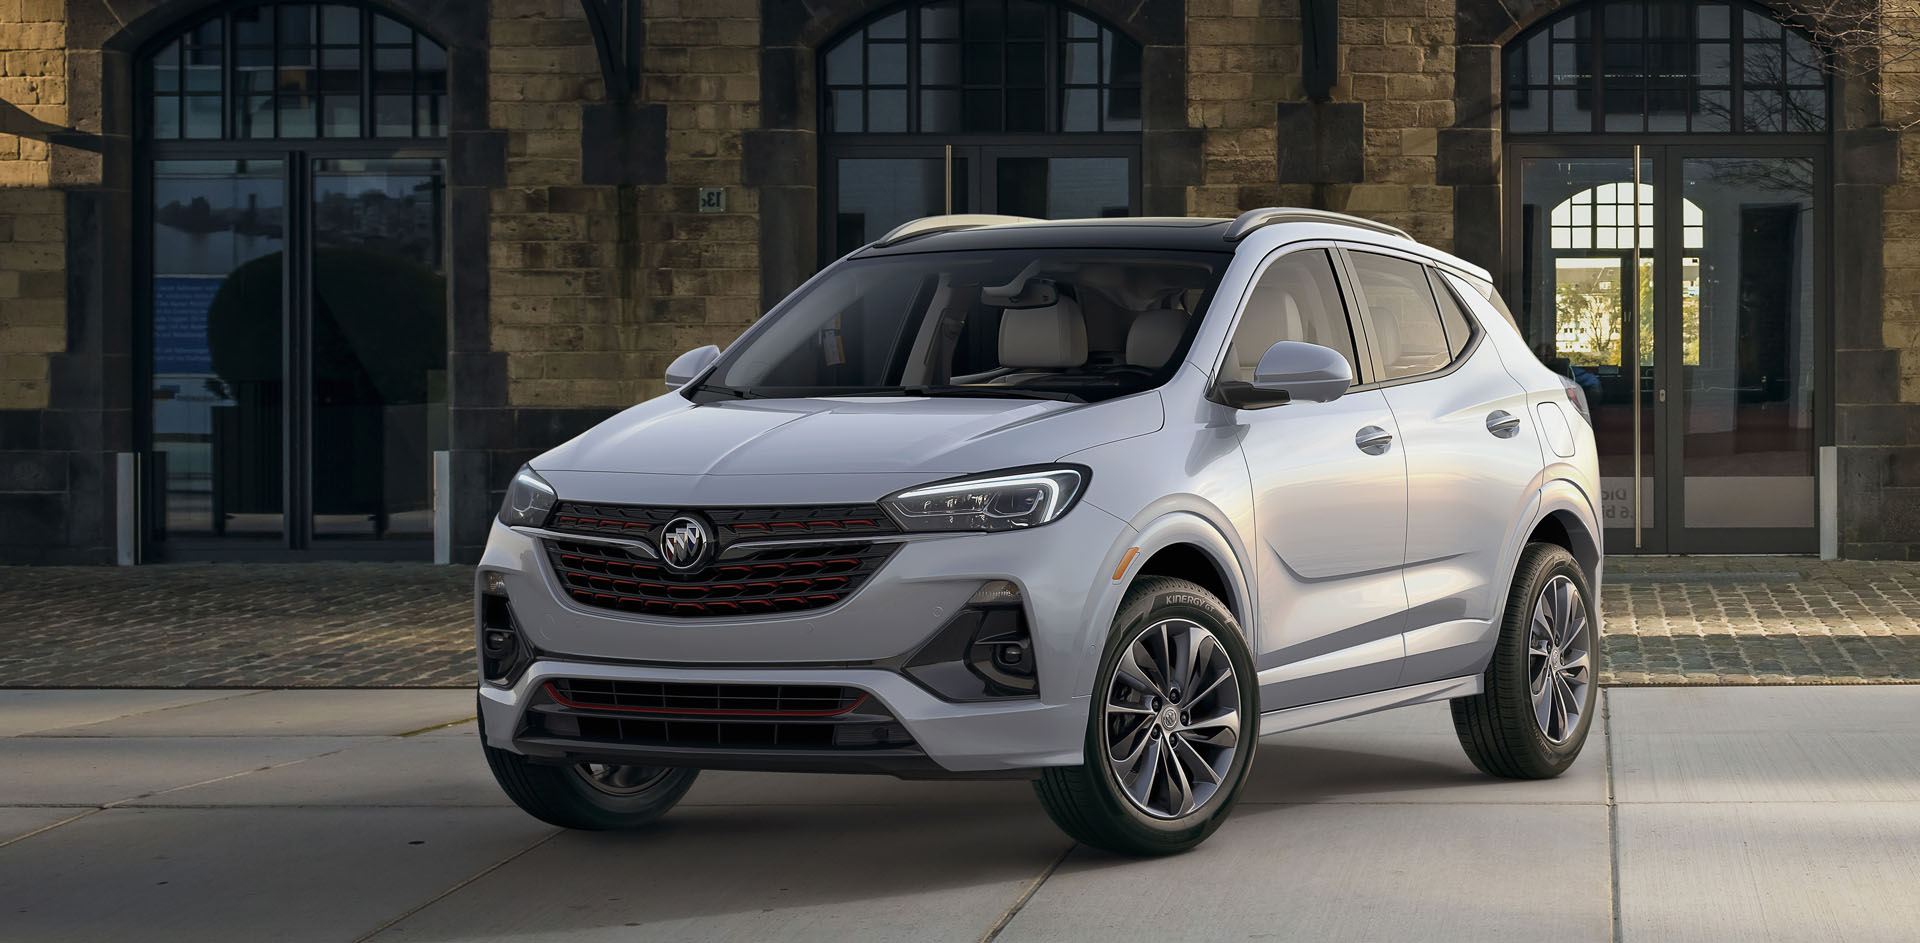 Buick Reveals U.s. Specs For The 2020 Encore Gx 2022 Buick Encore Gx Used, Weight, 0-60